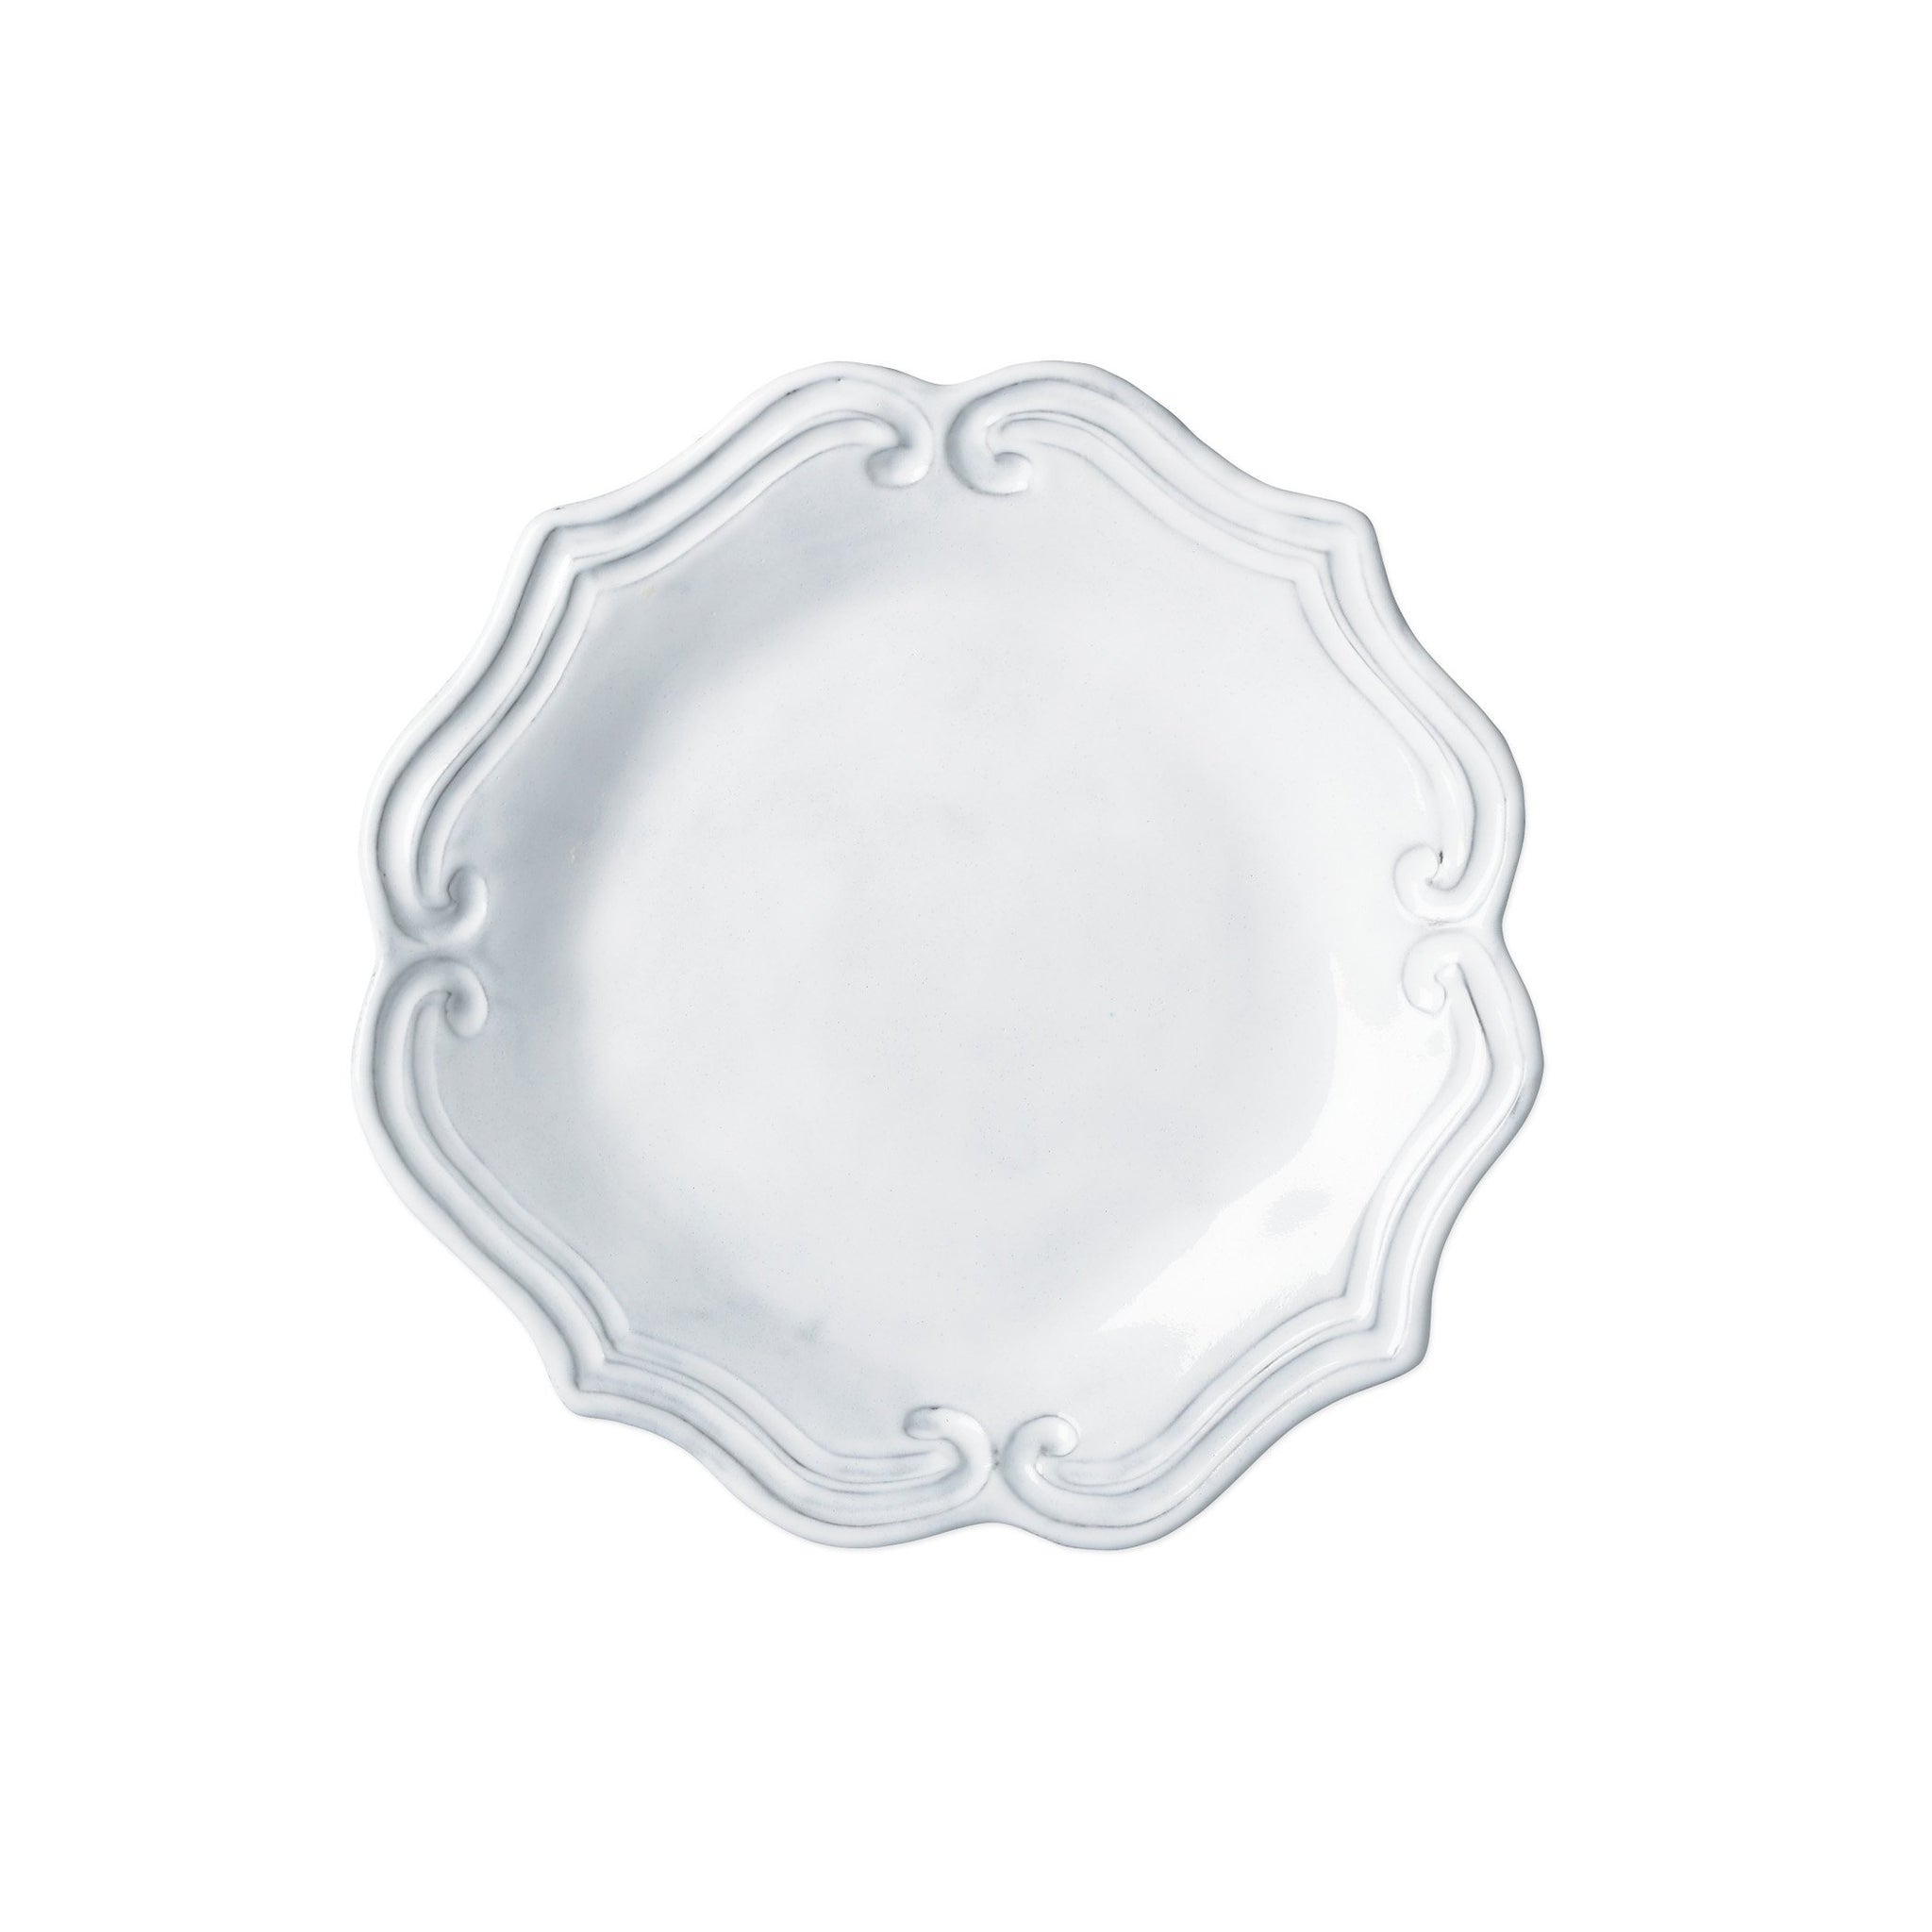 Incanto Baroque Salad Plate